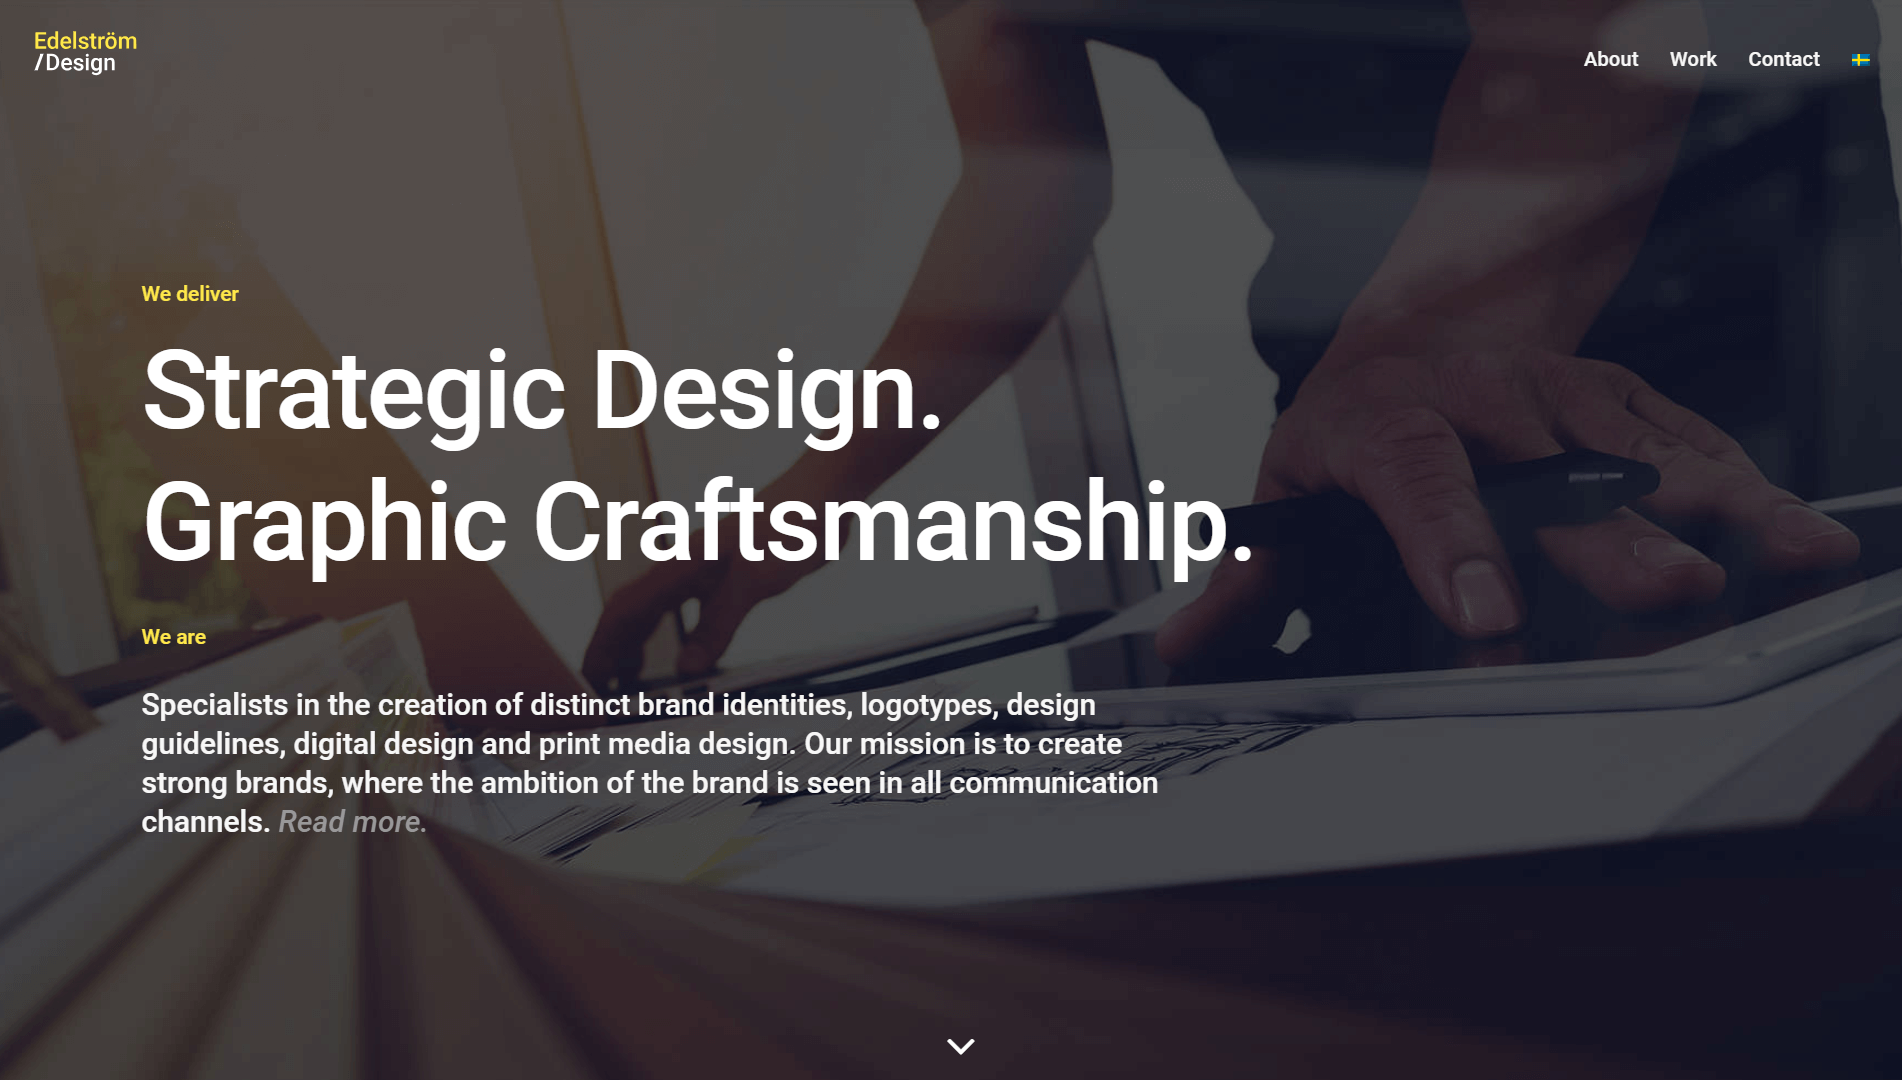 The Edelstrom Design homepage.